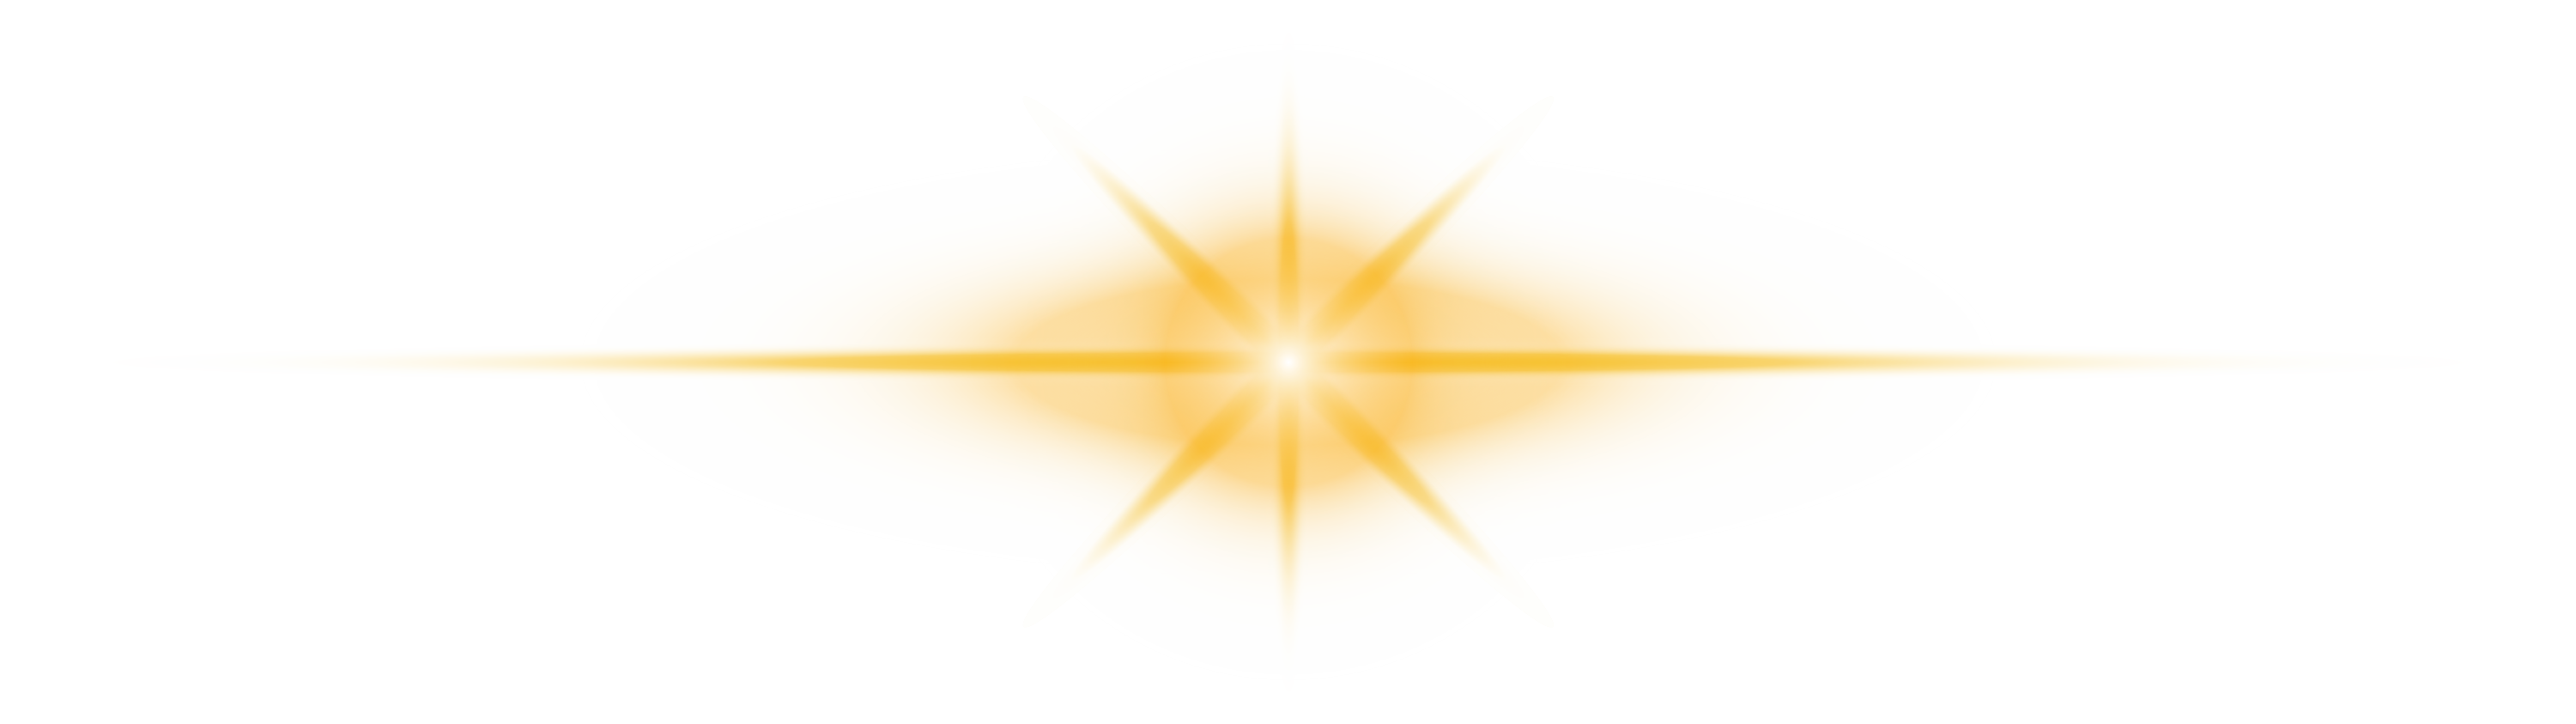 Shining light png. Yellow pattern bright transprent